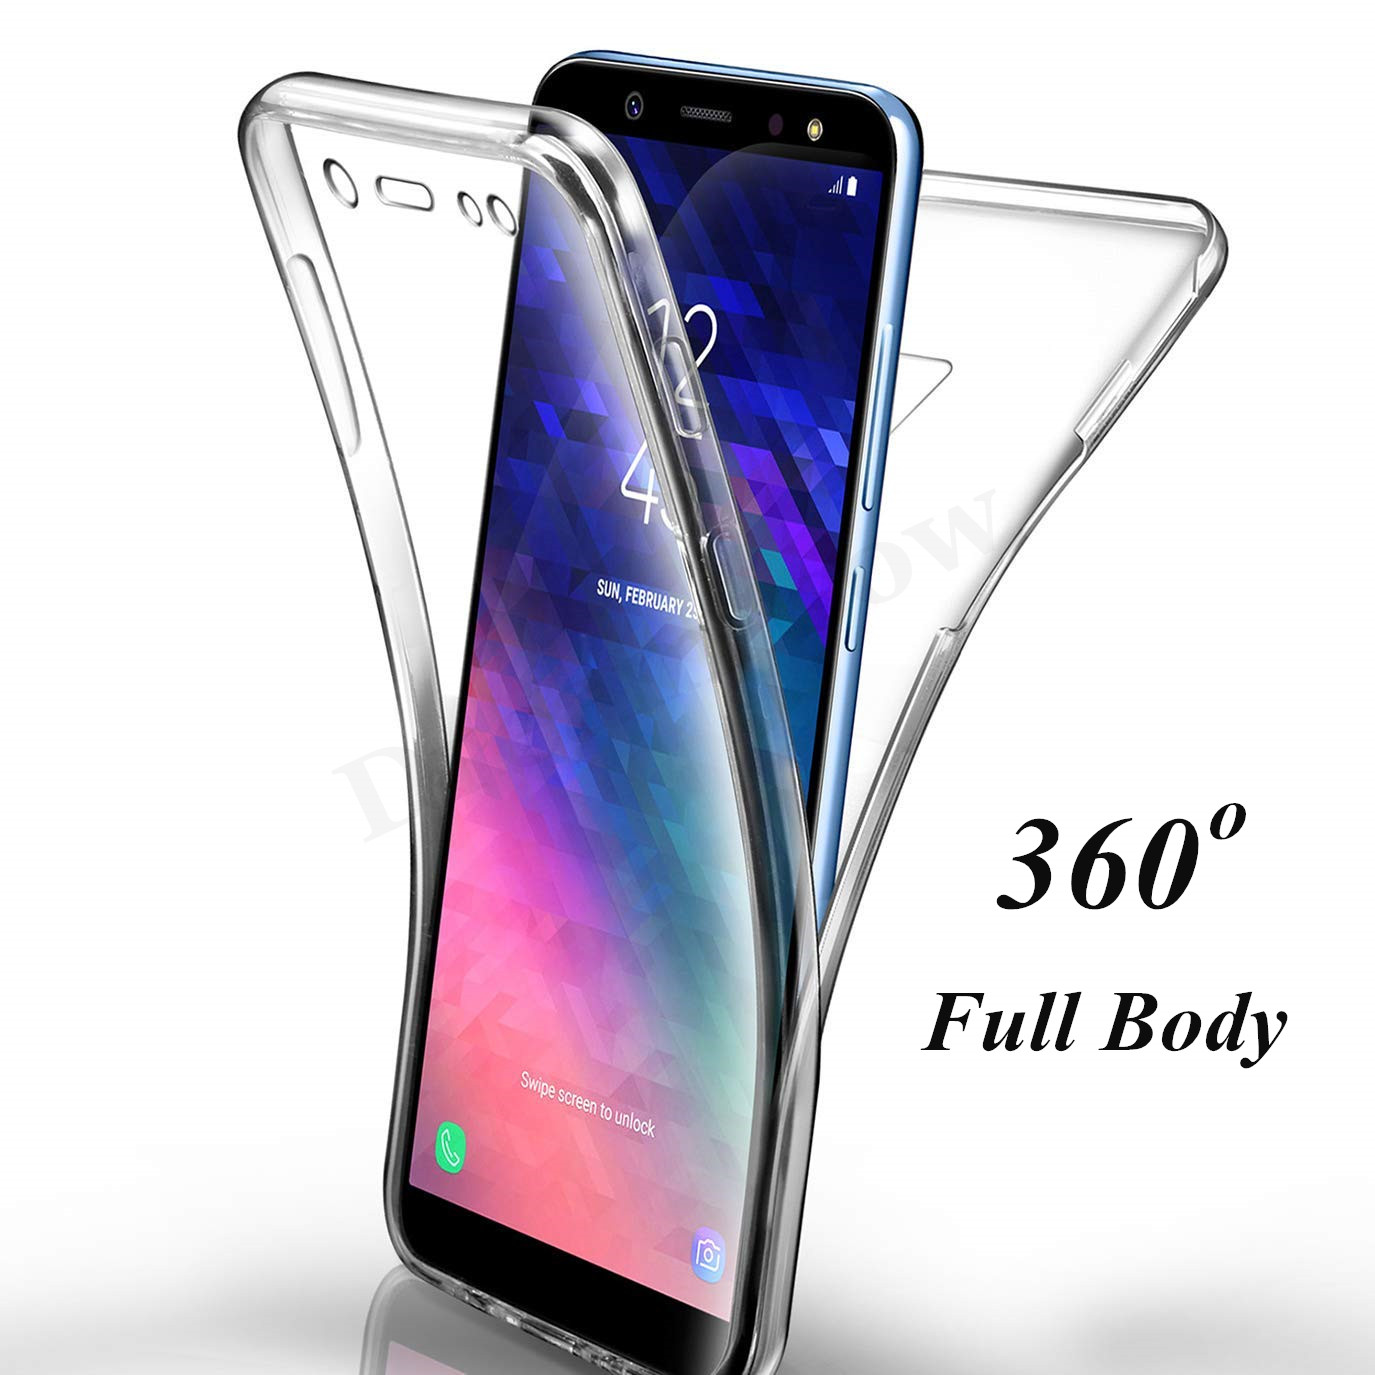 Full Body Soft TPU Case For Samsung Galaxy S10 E S9 S8 Plus A6 A8 Plus A750 A3 A5 A7 J3 J5 J7 2017 S6 S7 Edge Note 8 9 Case